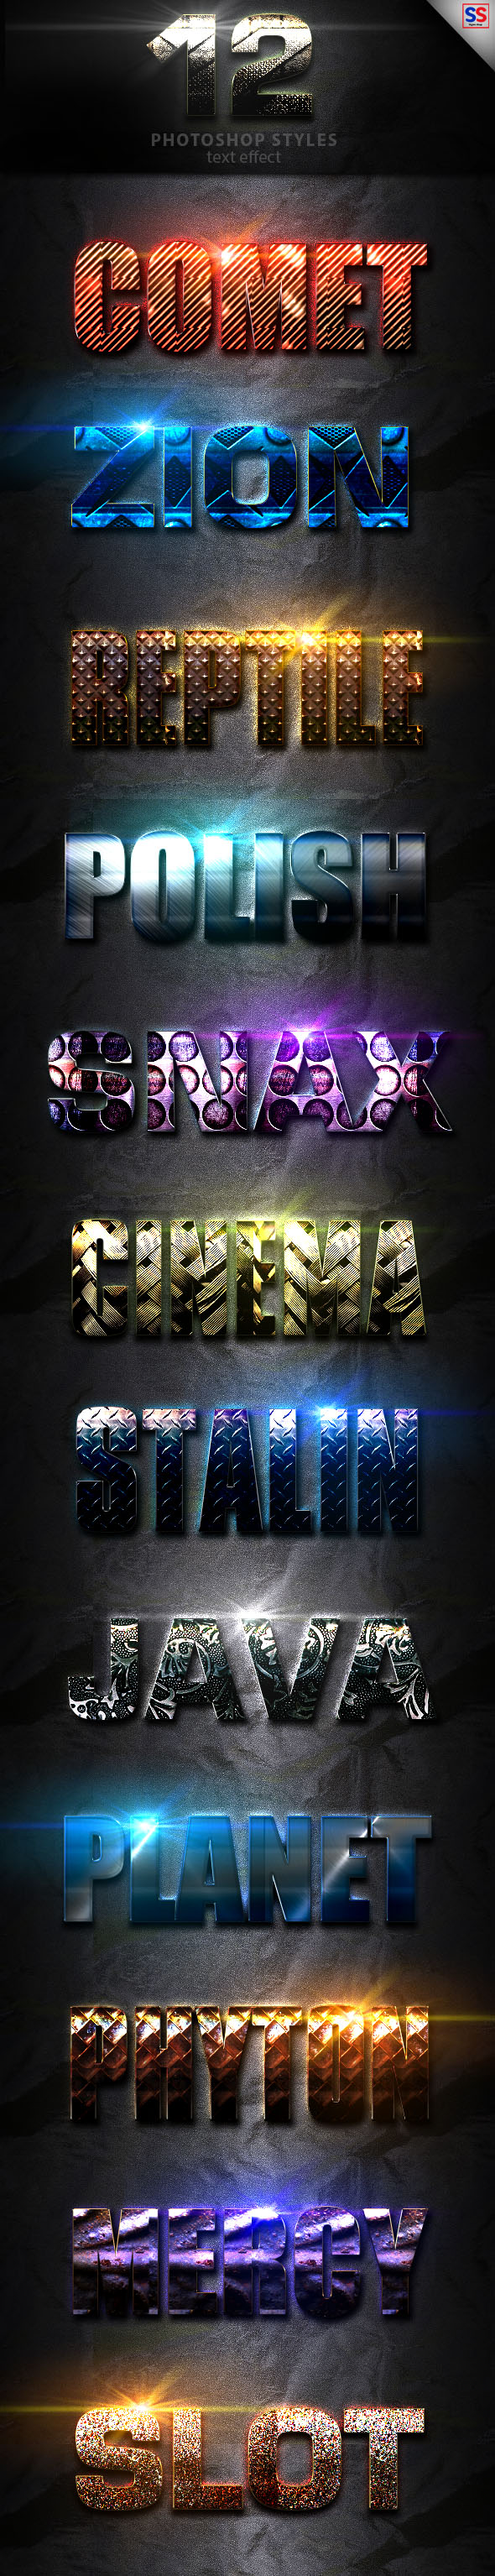 Light Photoshop Text Effect Vol 1 - Text Effects Styles